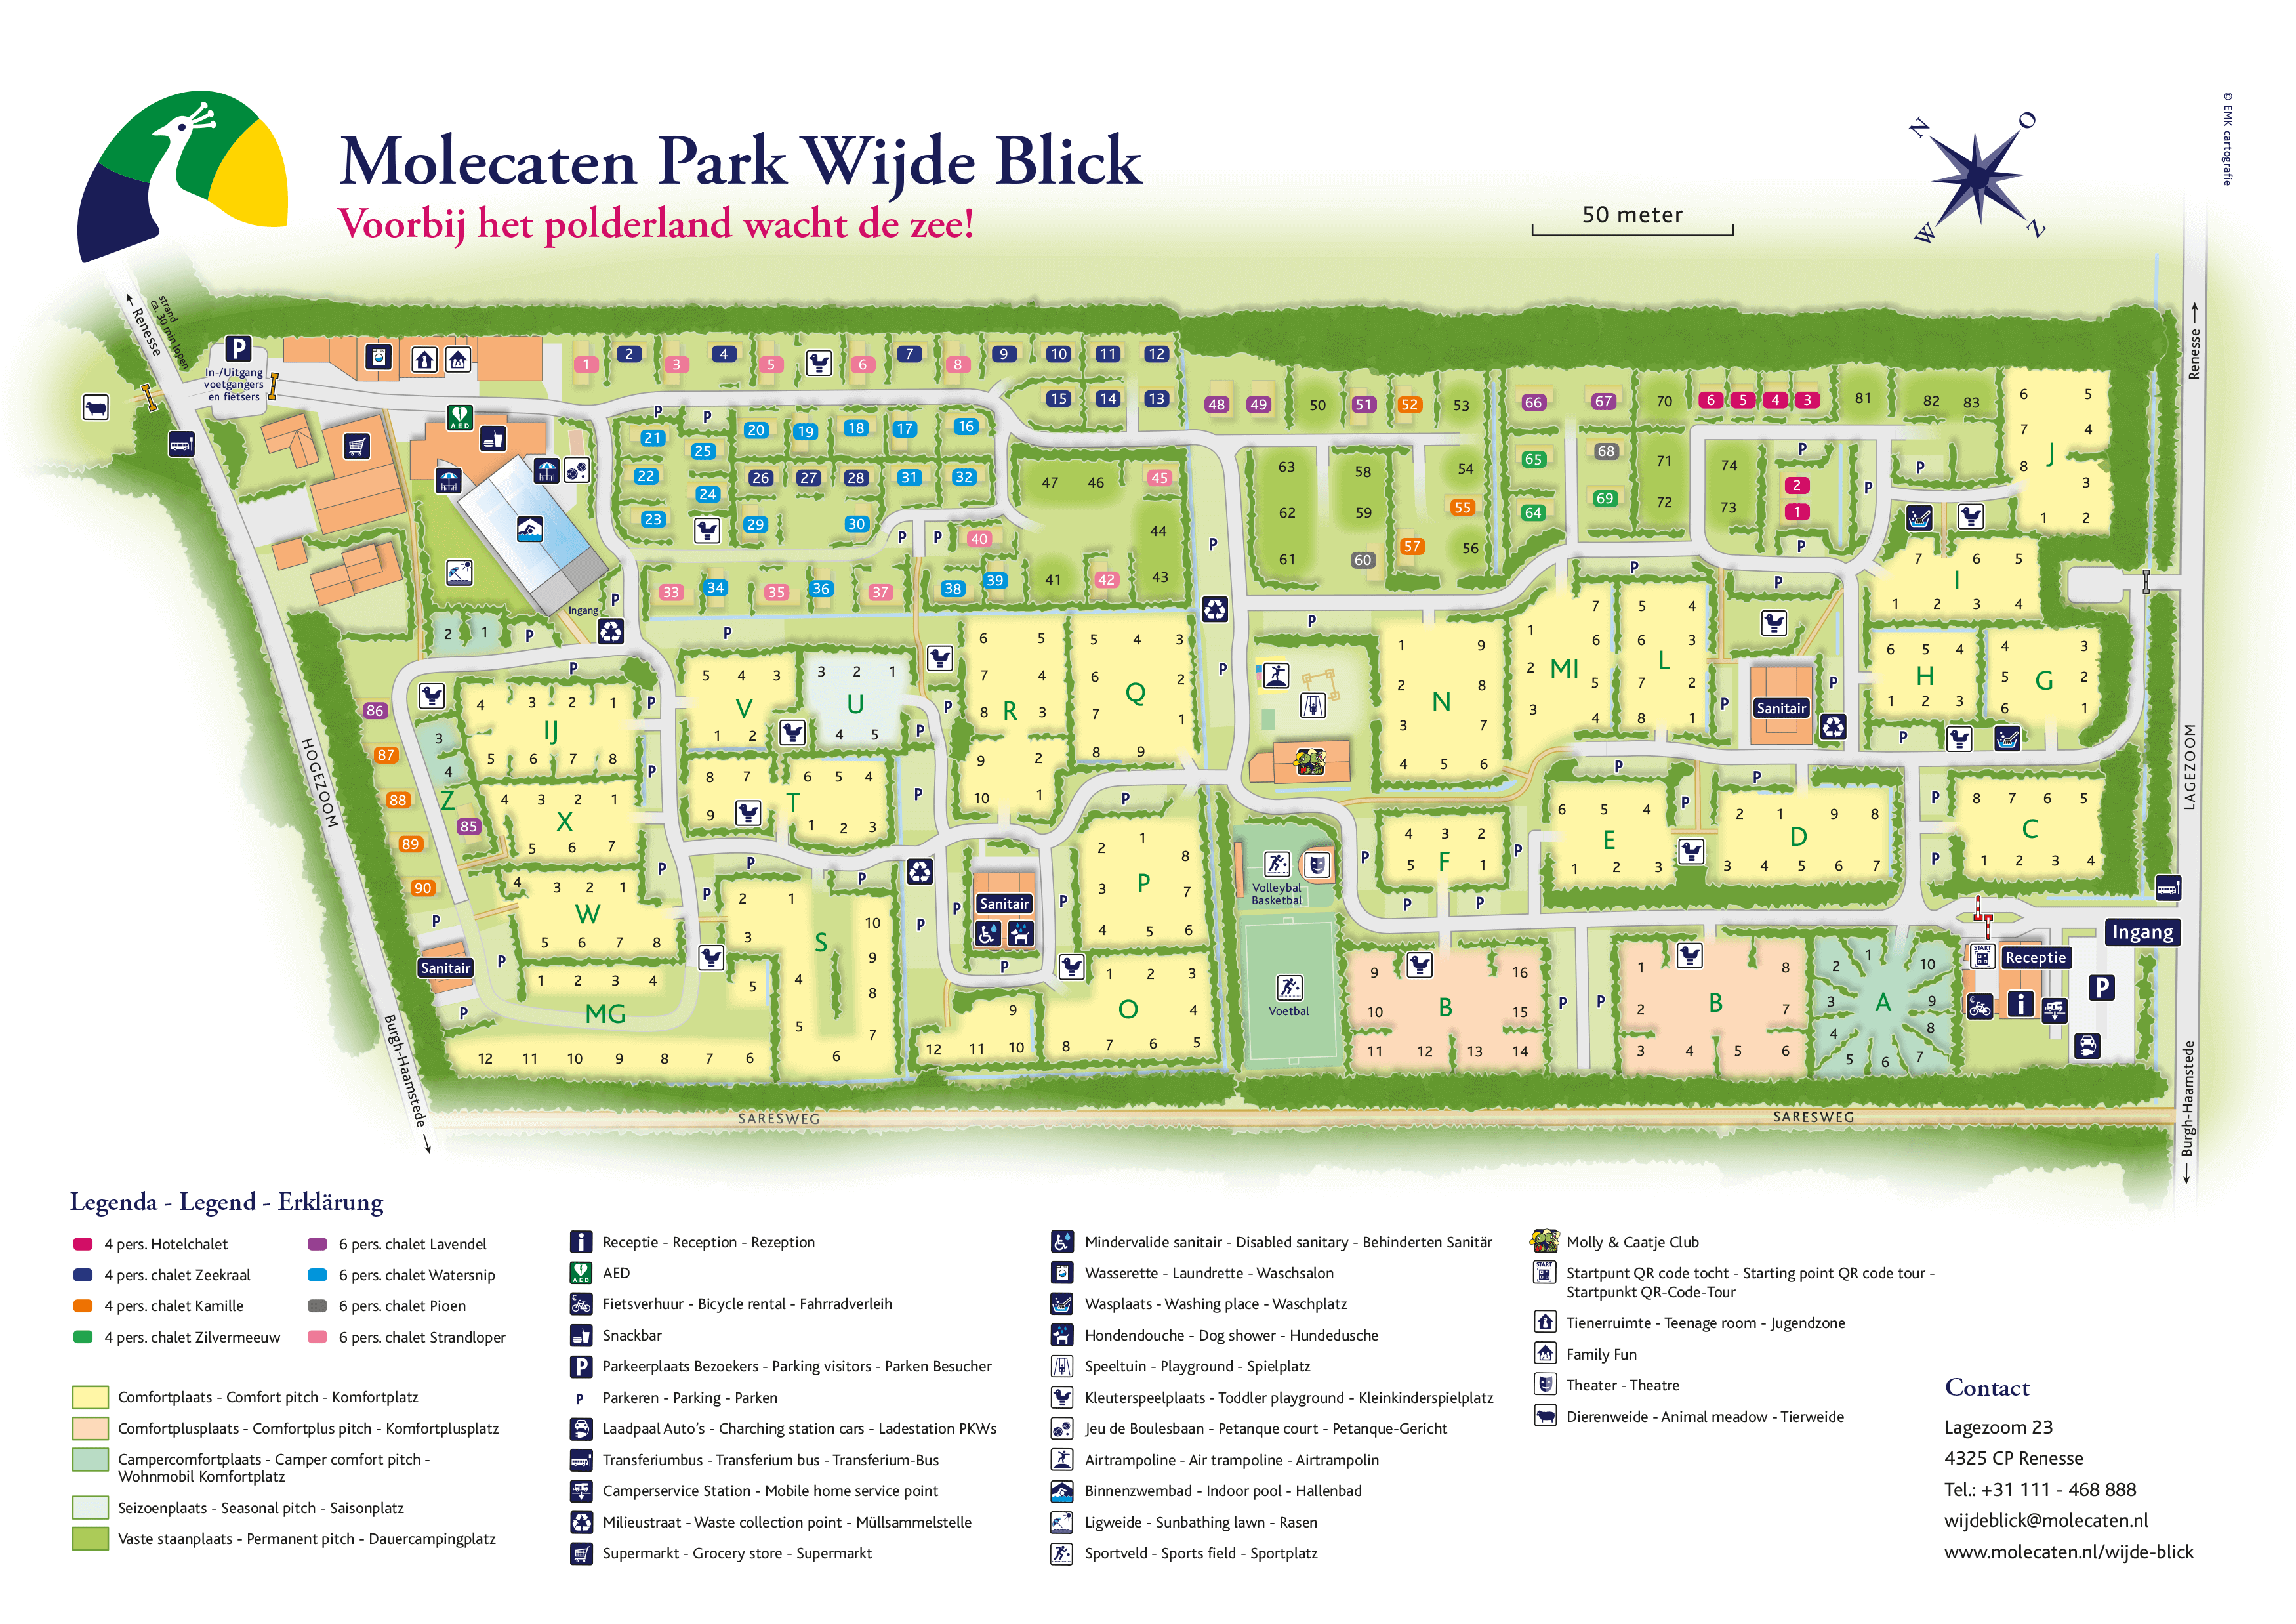 Molecaten Park Wijde Blick accommodation.parkmap.alttext